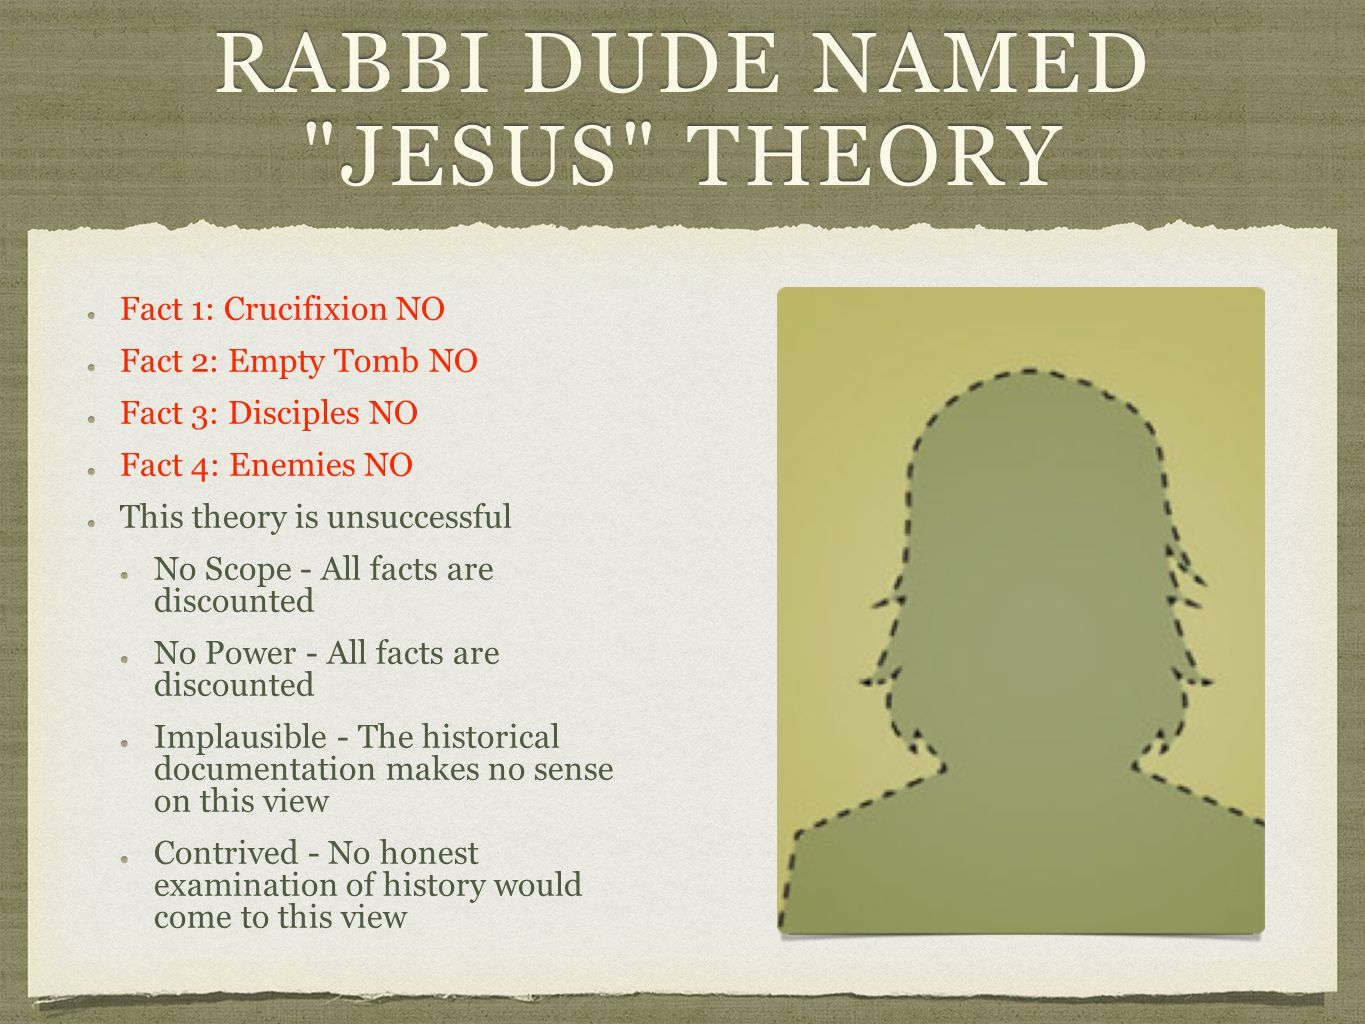 RABBI DUDE NAMED JESUS THEORY Fact 1: Crucifixion NOFact 1: Crucifixion NO Fact 2: Empty Tomb NOFact 2: Empty Tomb NO Fact 3: Disciples NOFact 3: Disciples NO Fact 4: Enemies NOFact 4: Enemies NO This theory is unsuccessfulThis theory is unsuccessful No Scope - All facts are discounted No Power - All facts are discounted Implausible - The historical documentation makes no sense on this view Contrived - No honest examination of history would come to this view